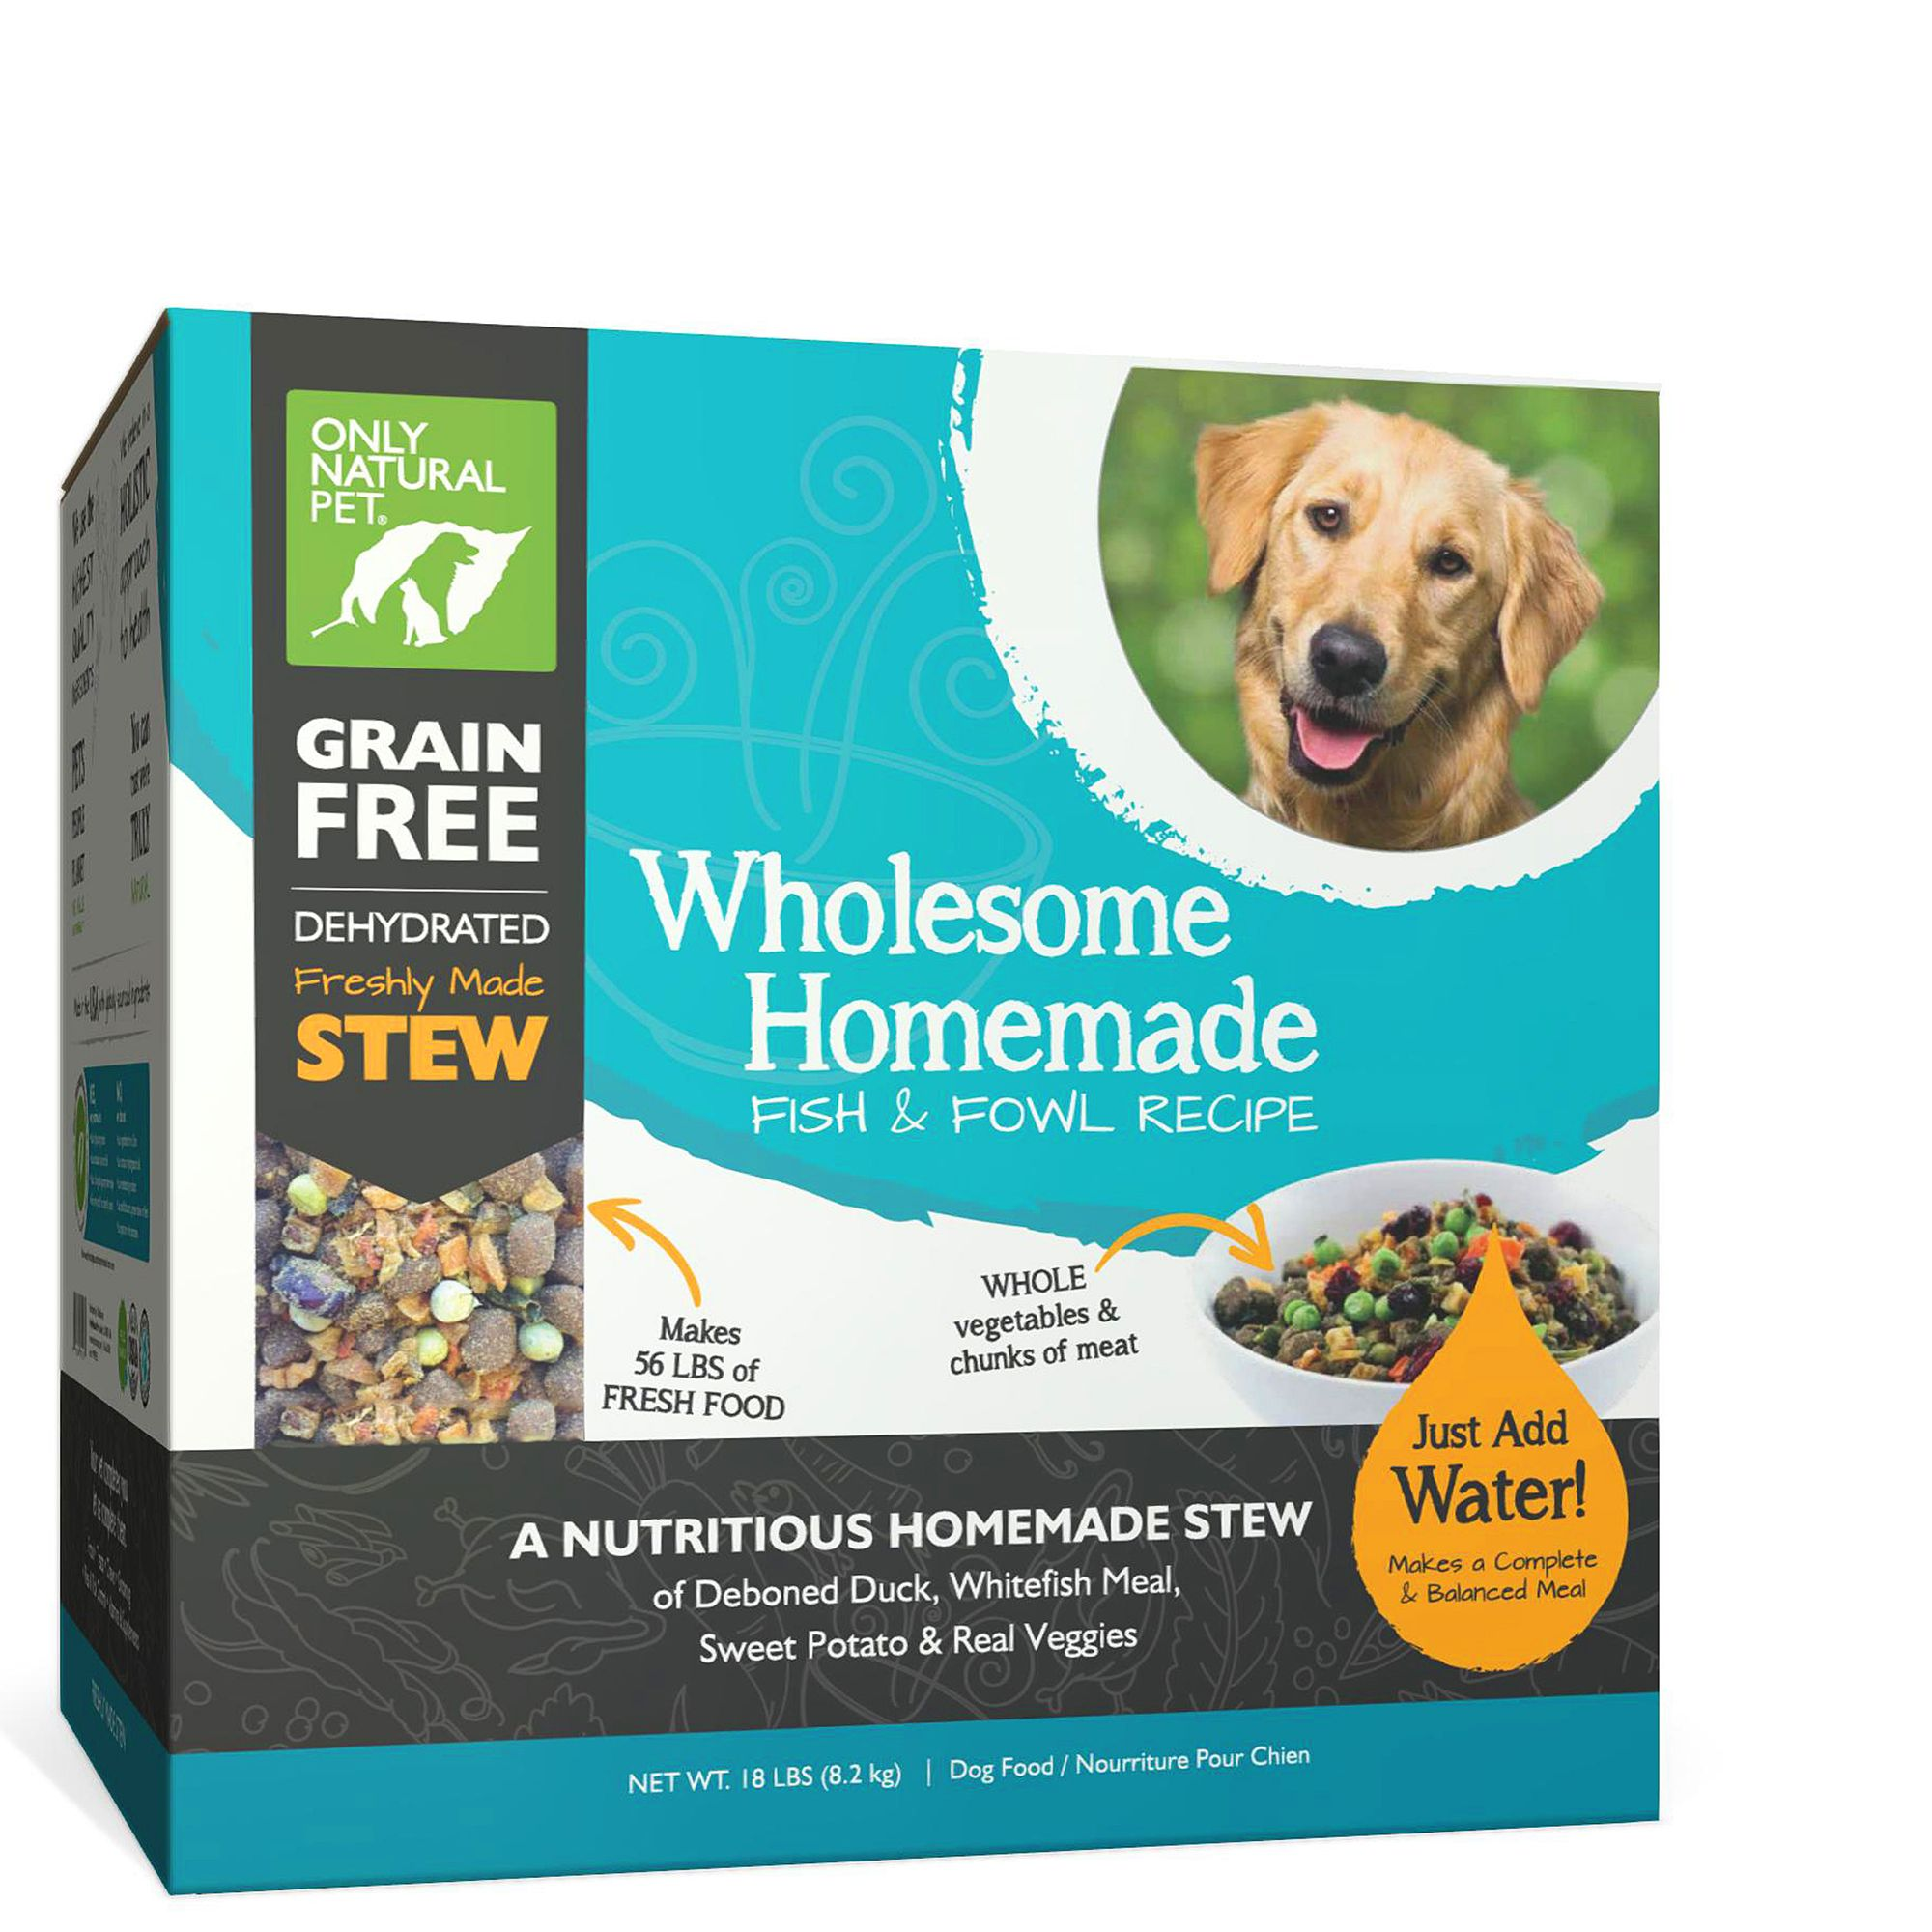 Only Natural Pet Wholesome Homemade Dog Food  Grain Free Dehydrated Fish and Fowl size 18 Lb